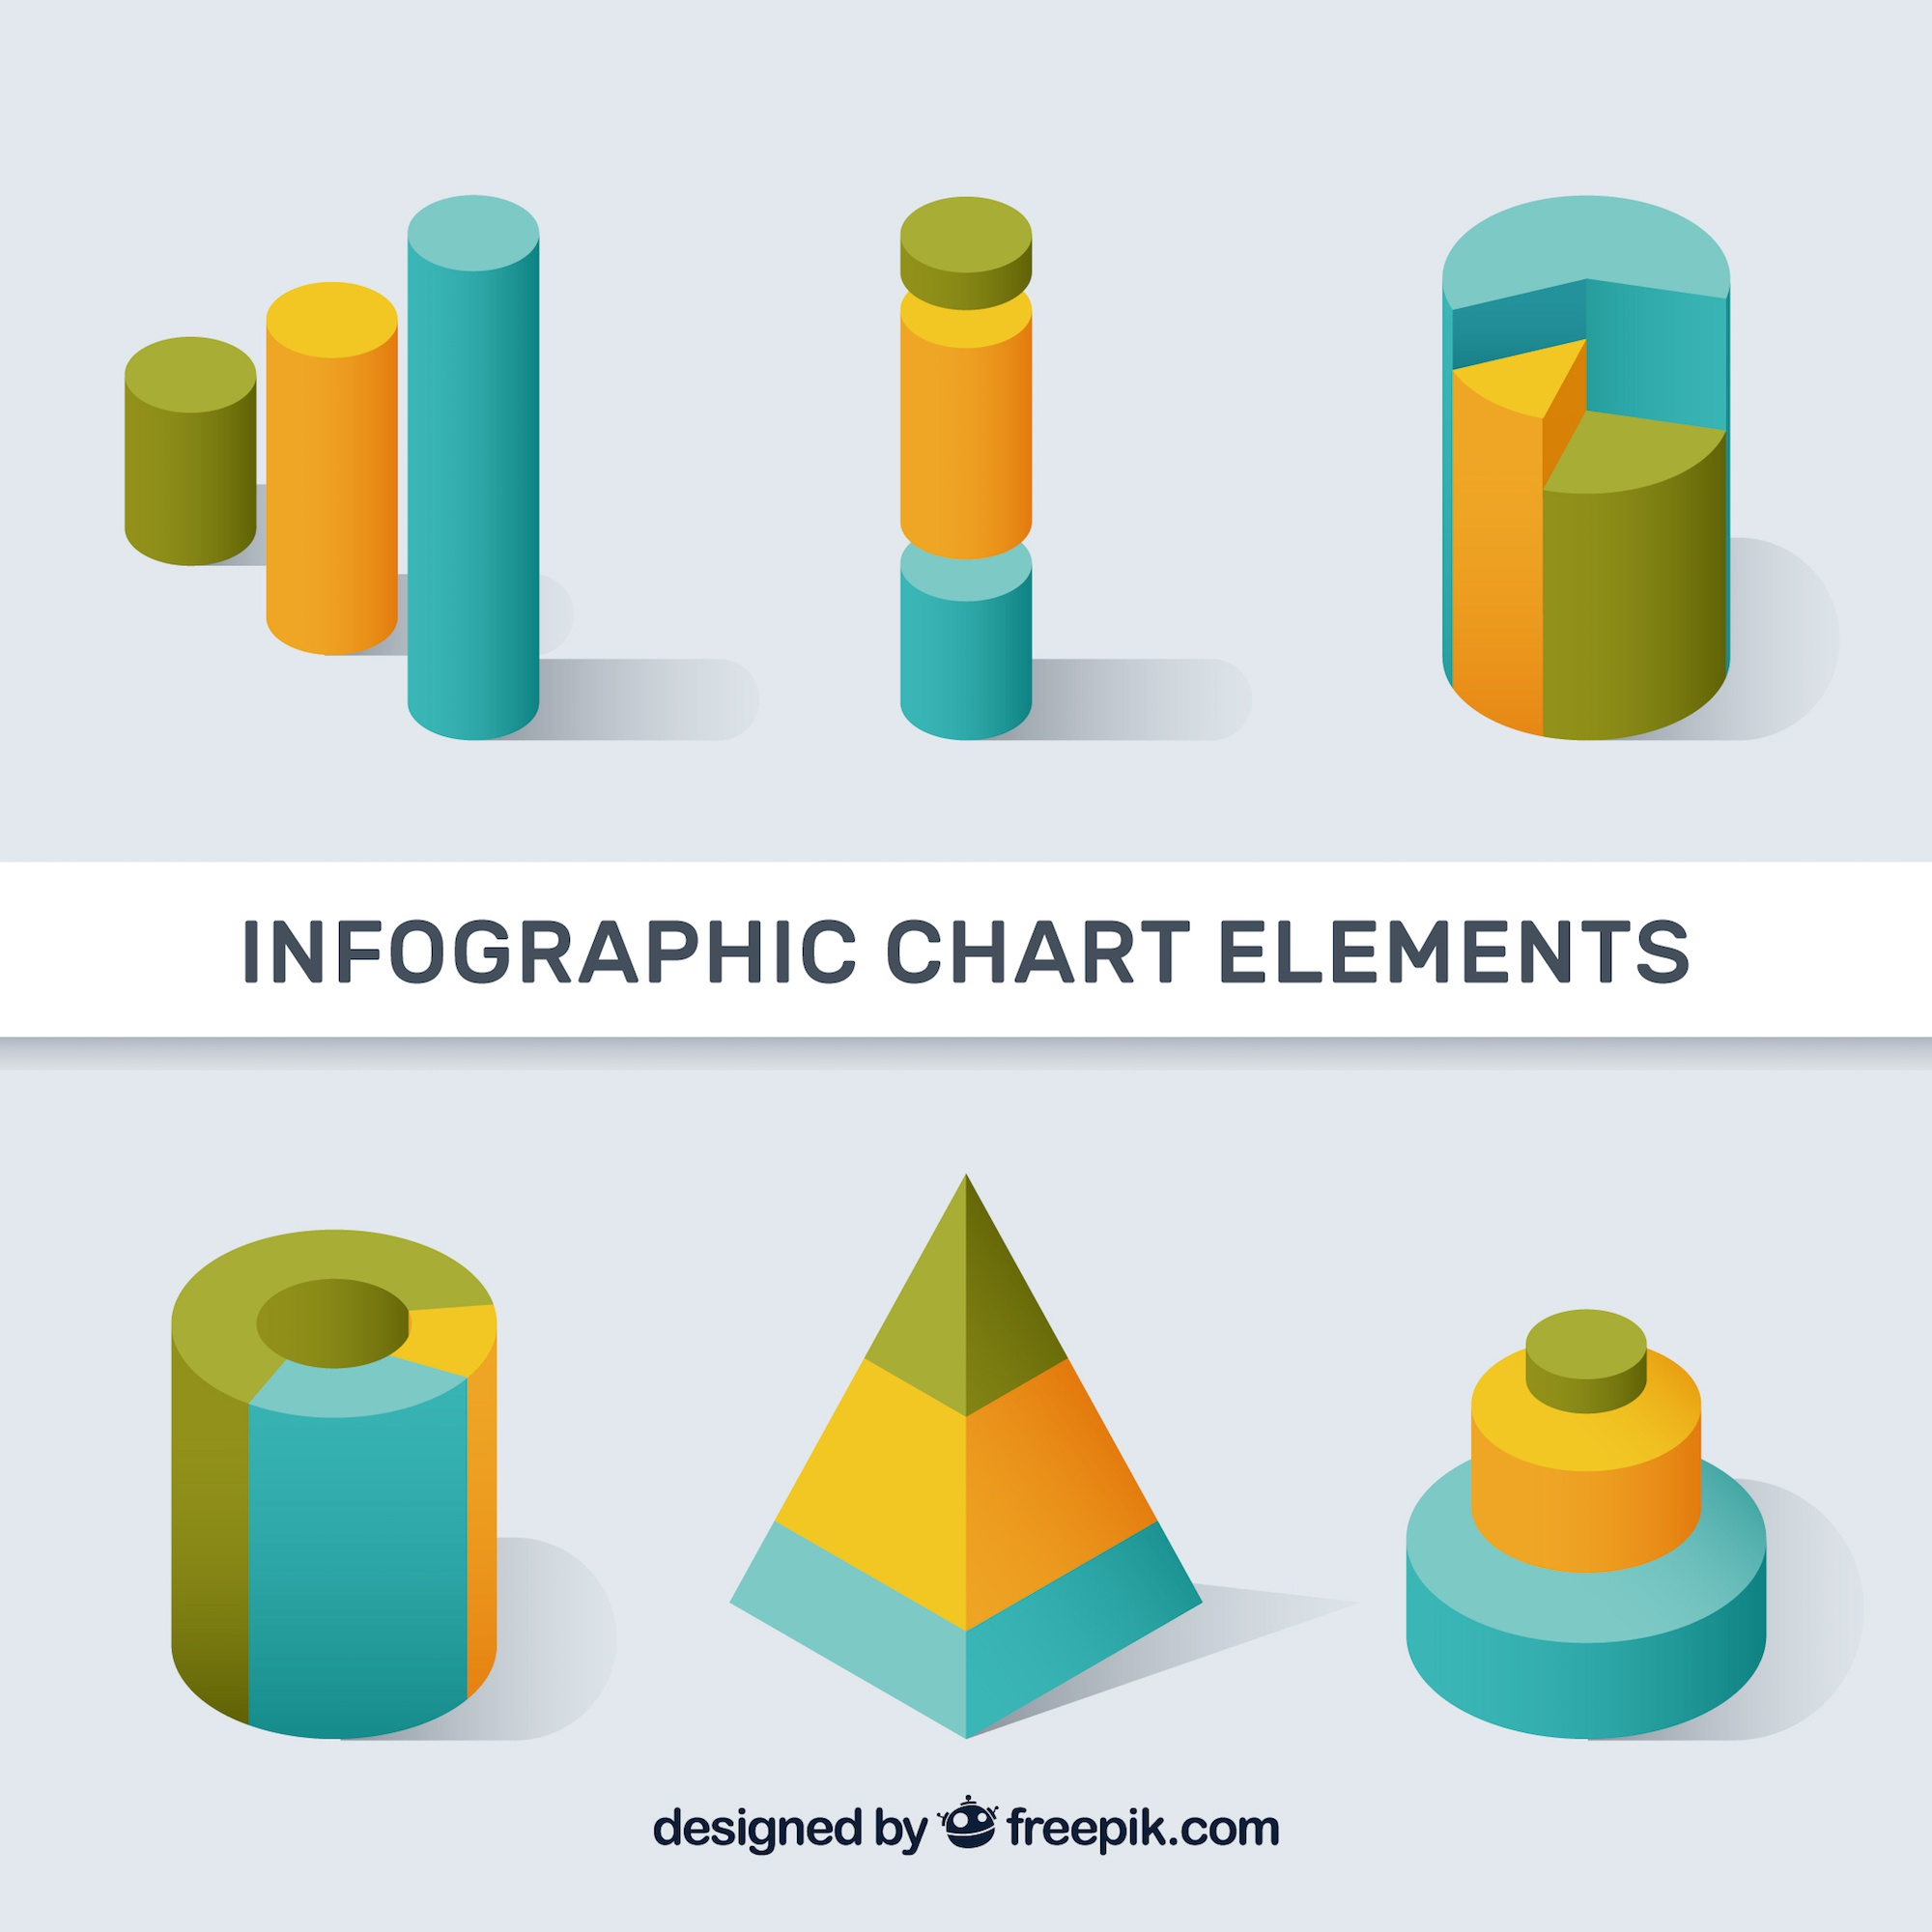 Infographic chart elements